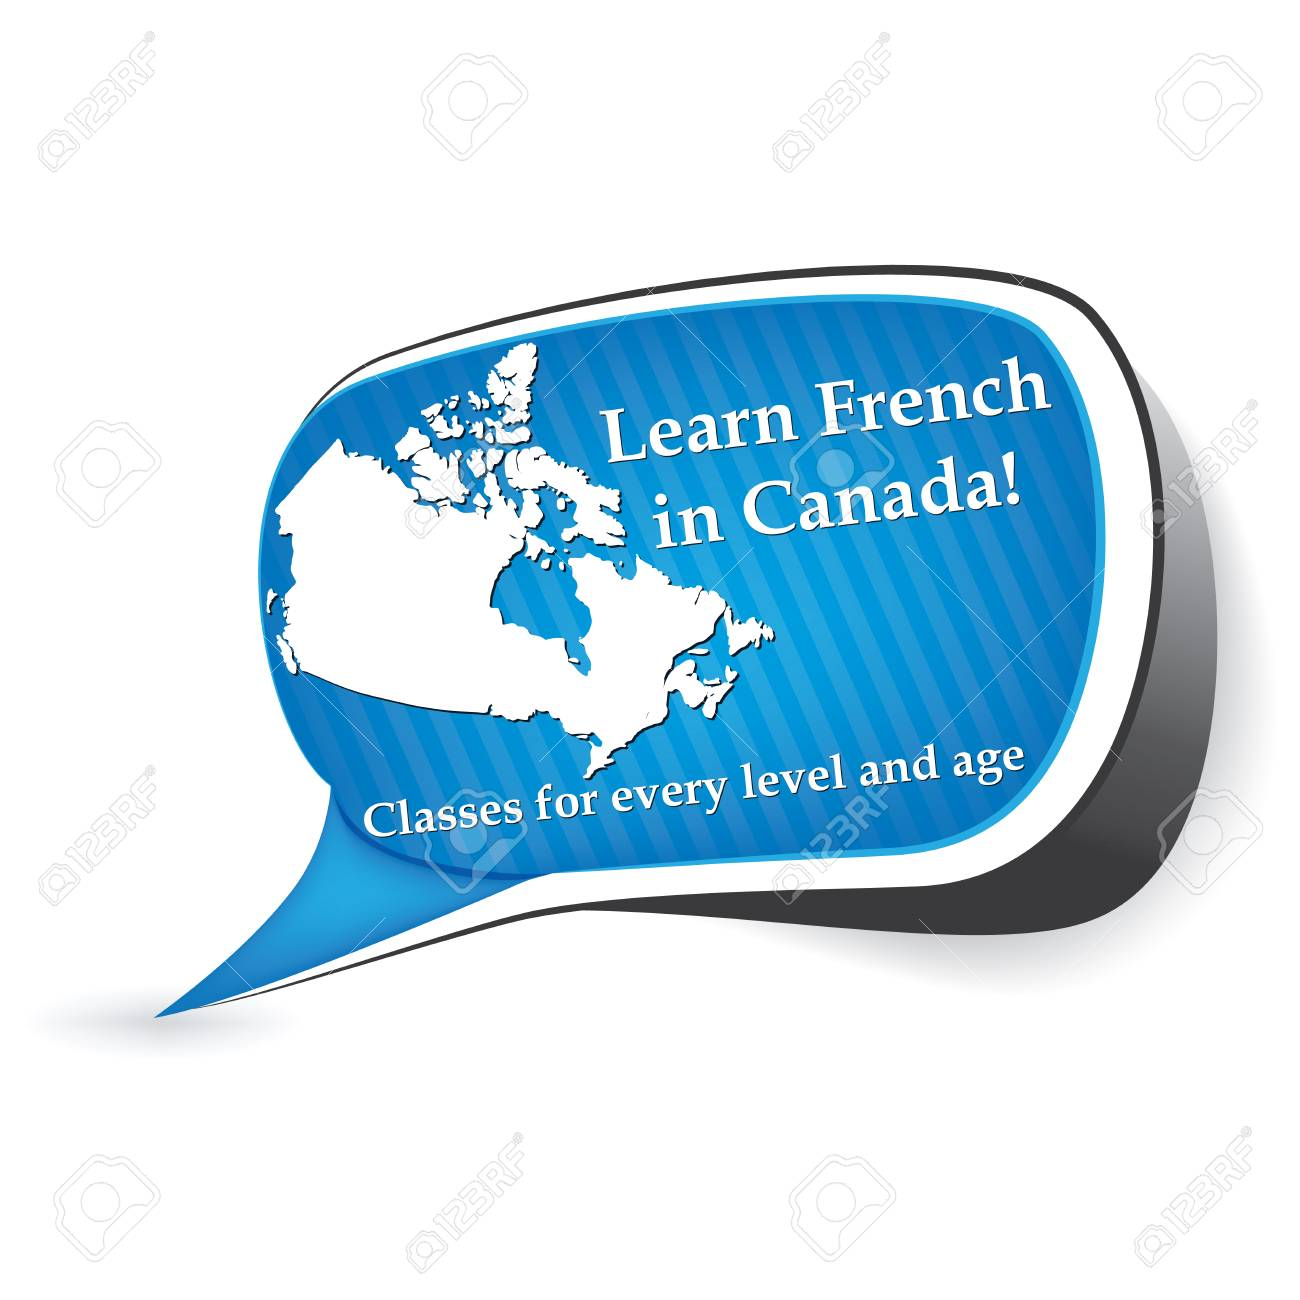 learn french in canada for free